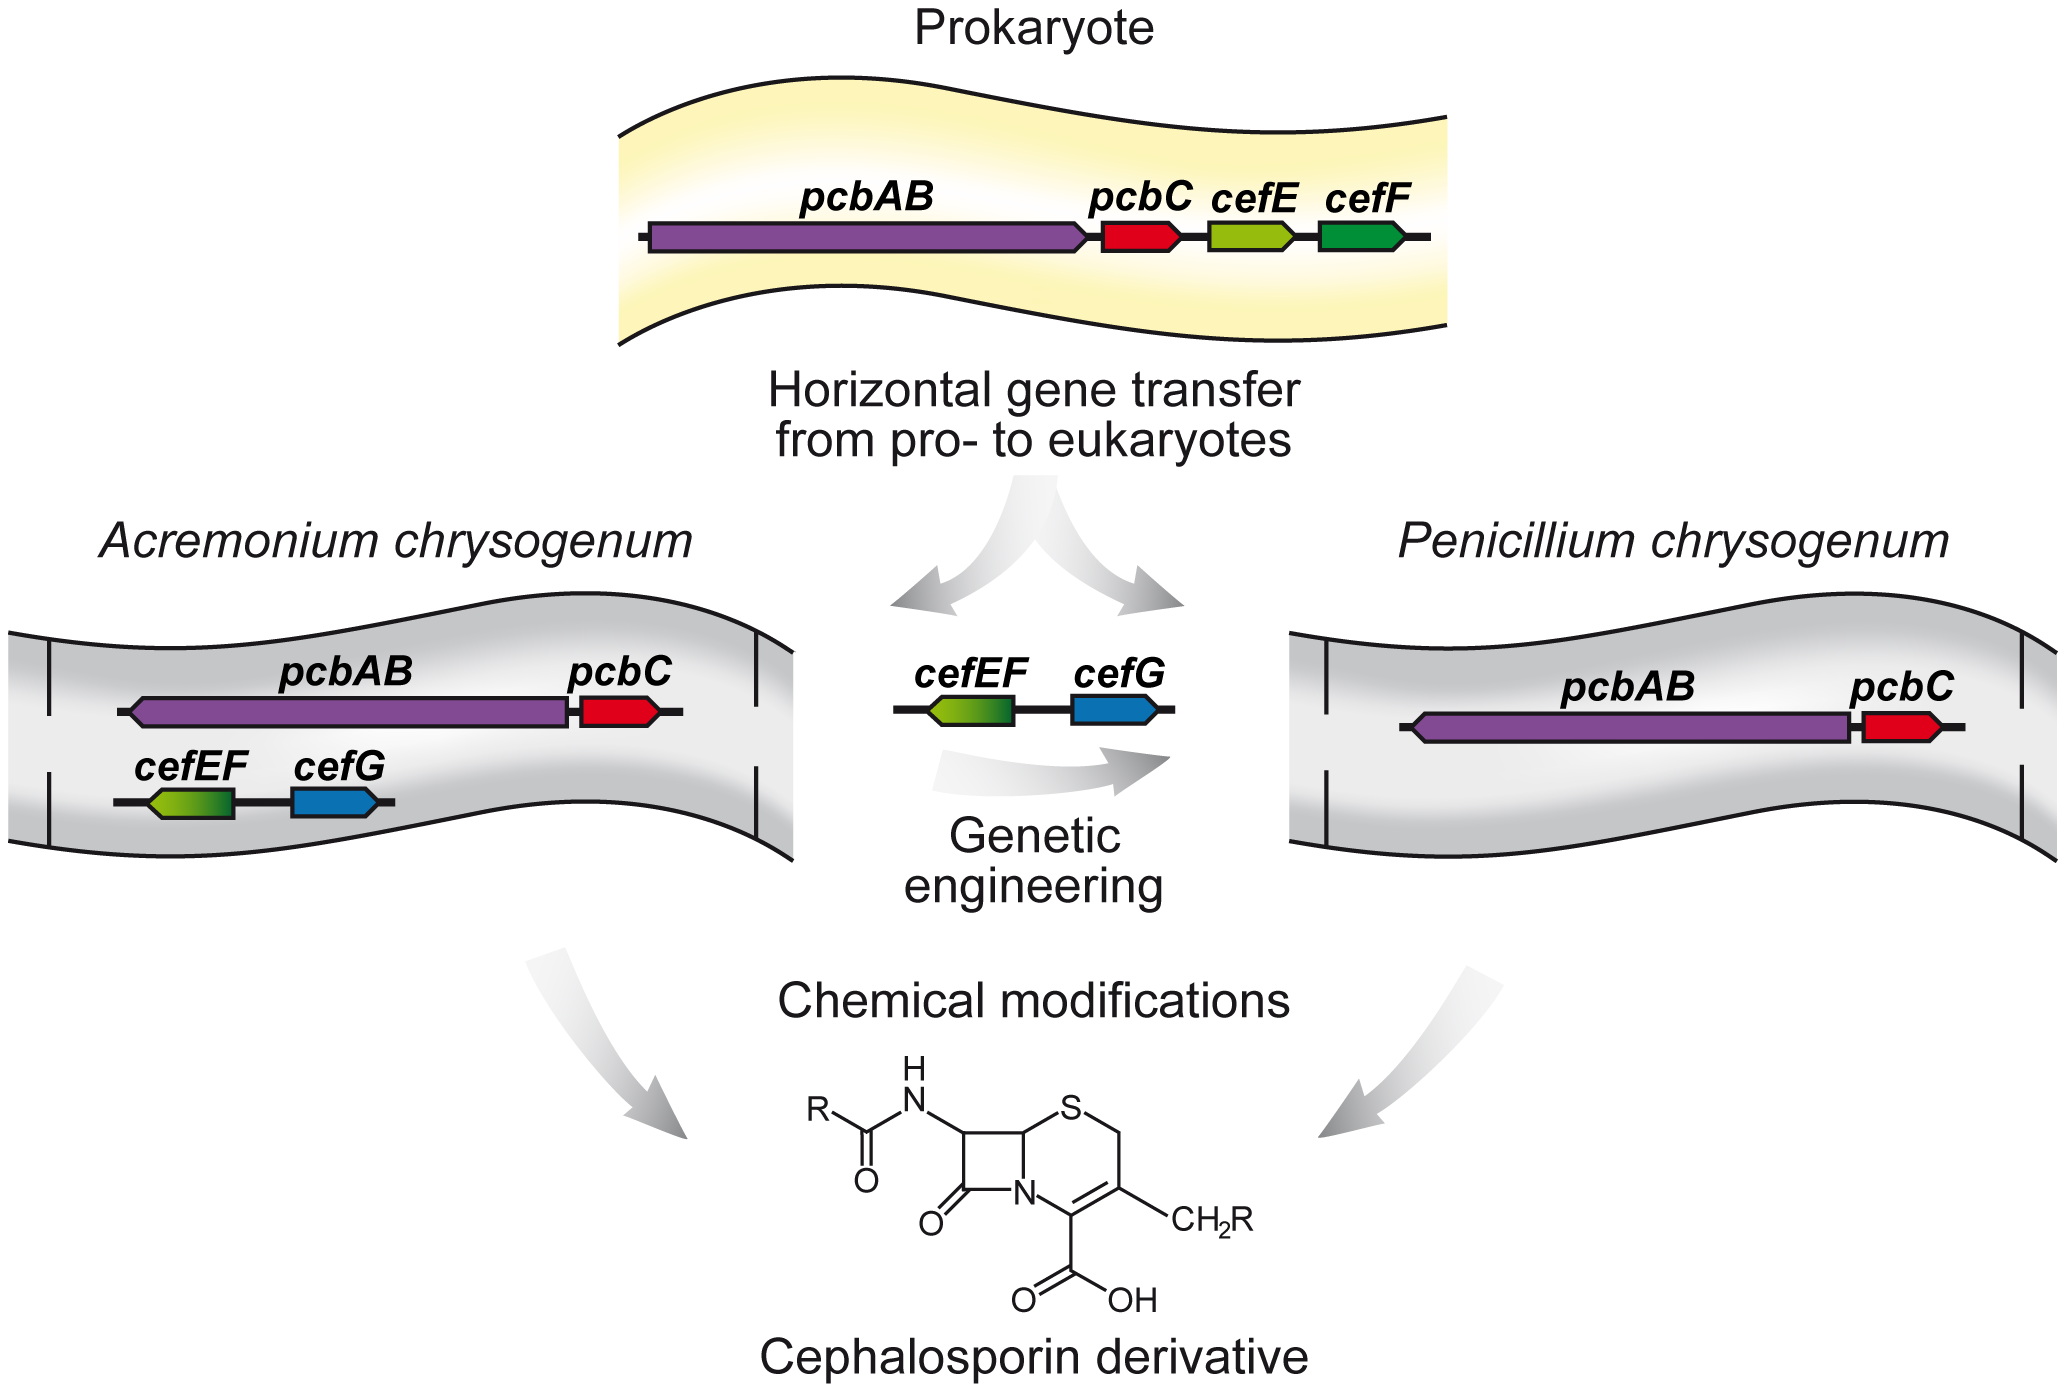 Horizontal gene transfer of beta-lactam biosynthesis genes from prokaryotes to eukaryotes.